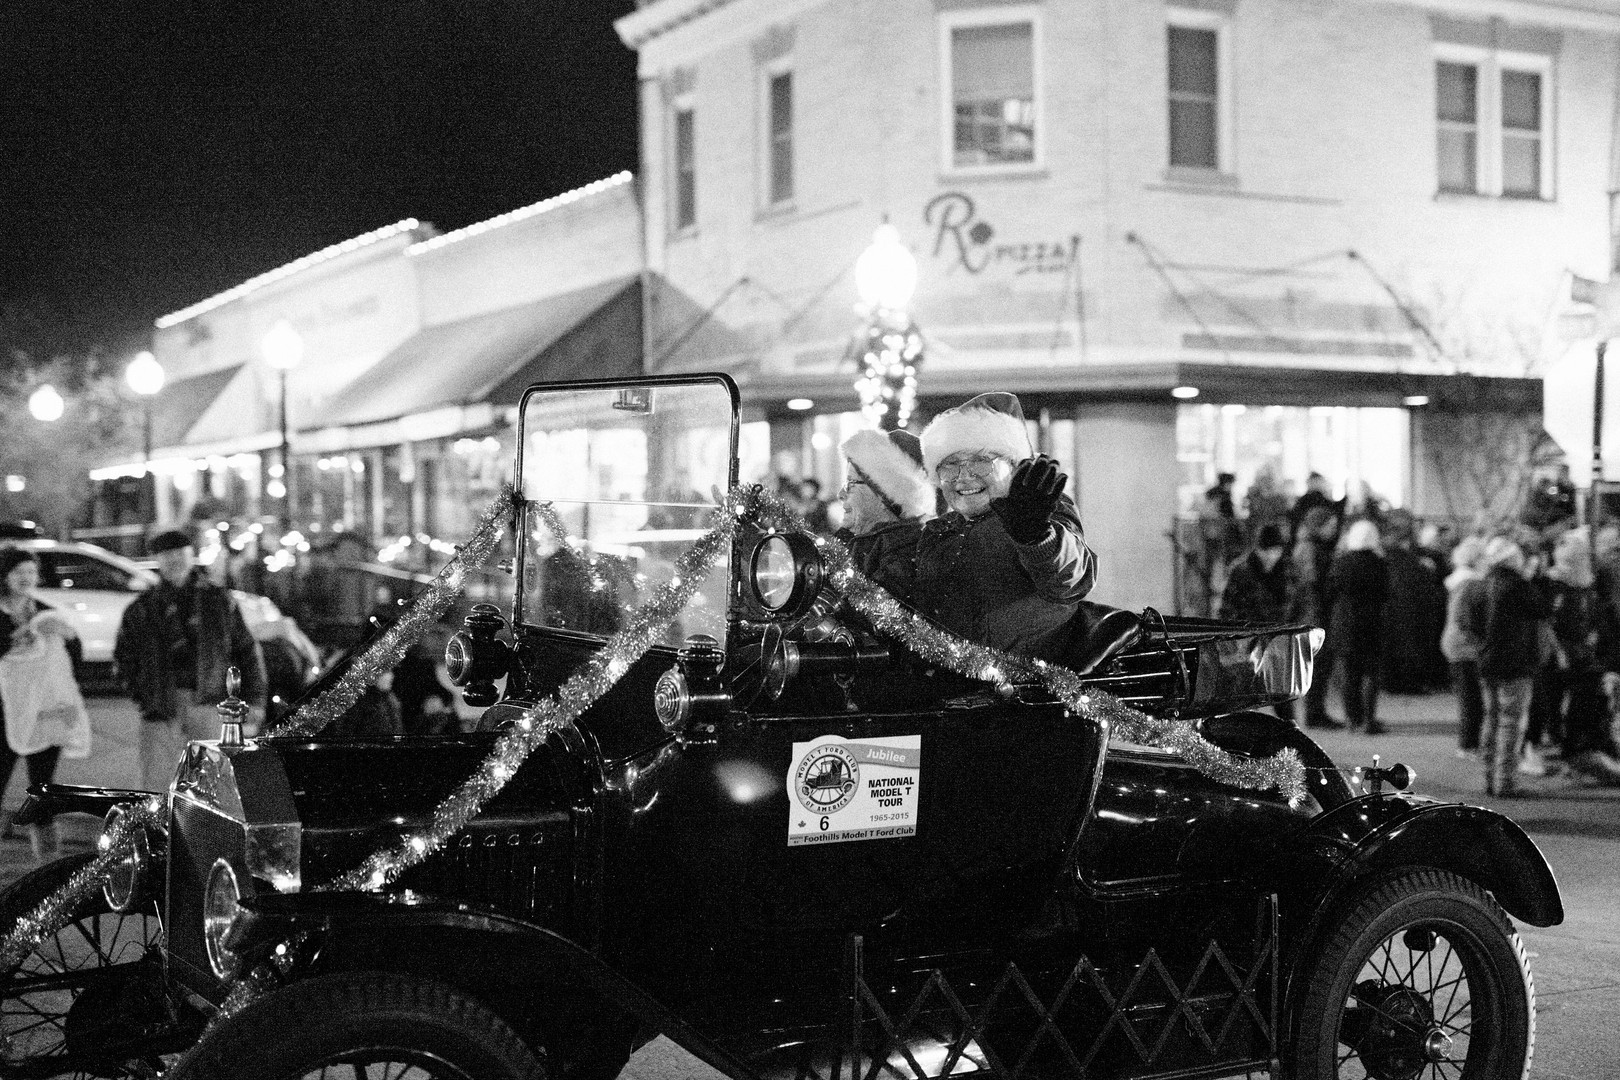 Downtown-Bryan-Christmas-Parade-2018-15.